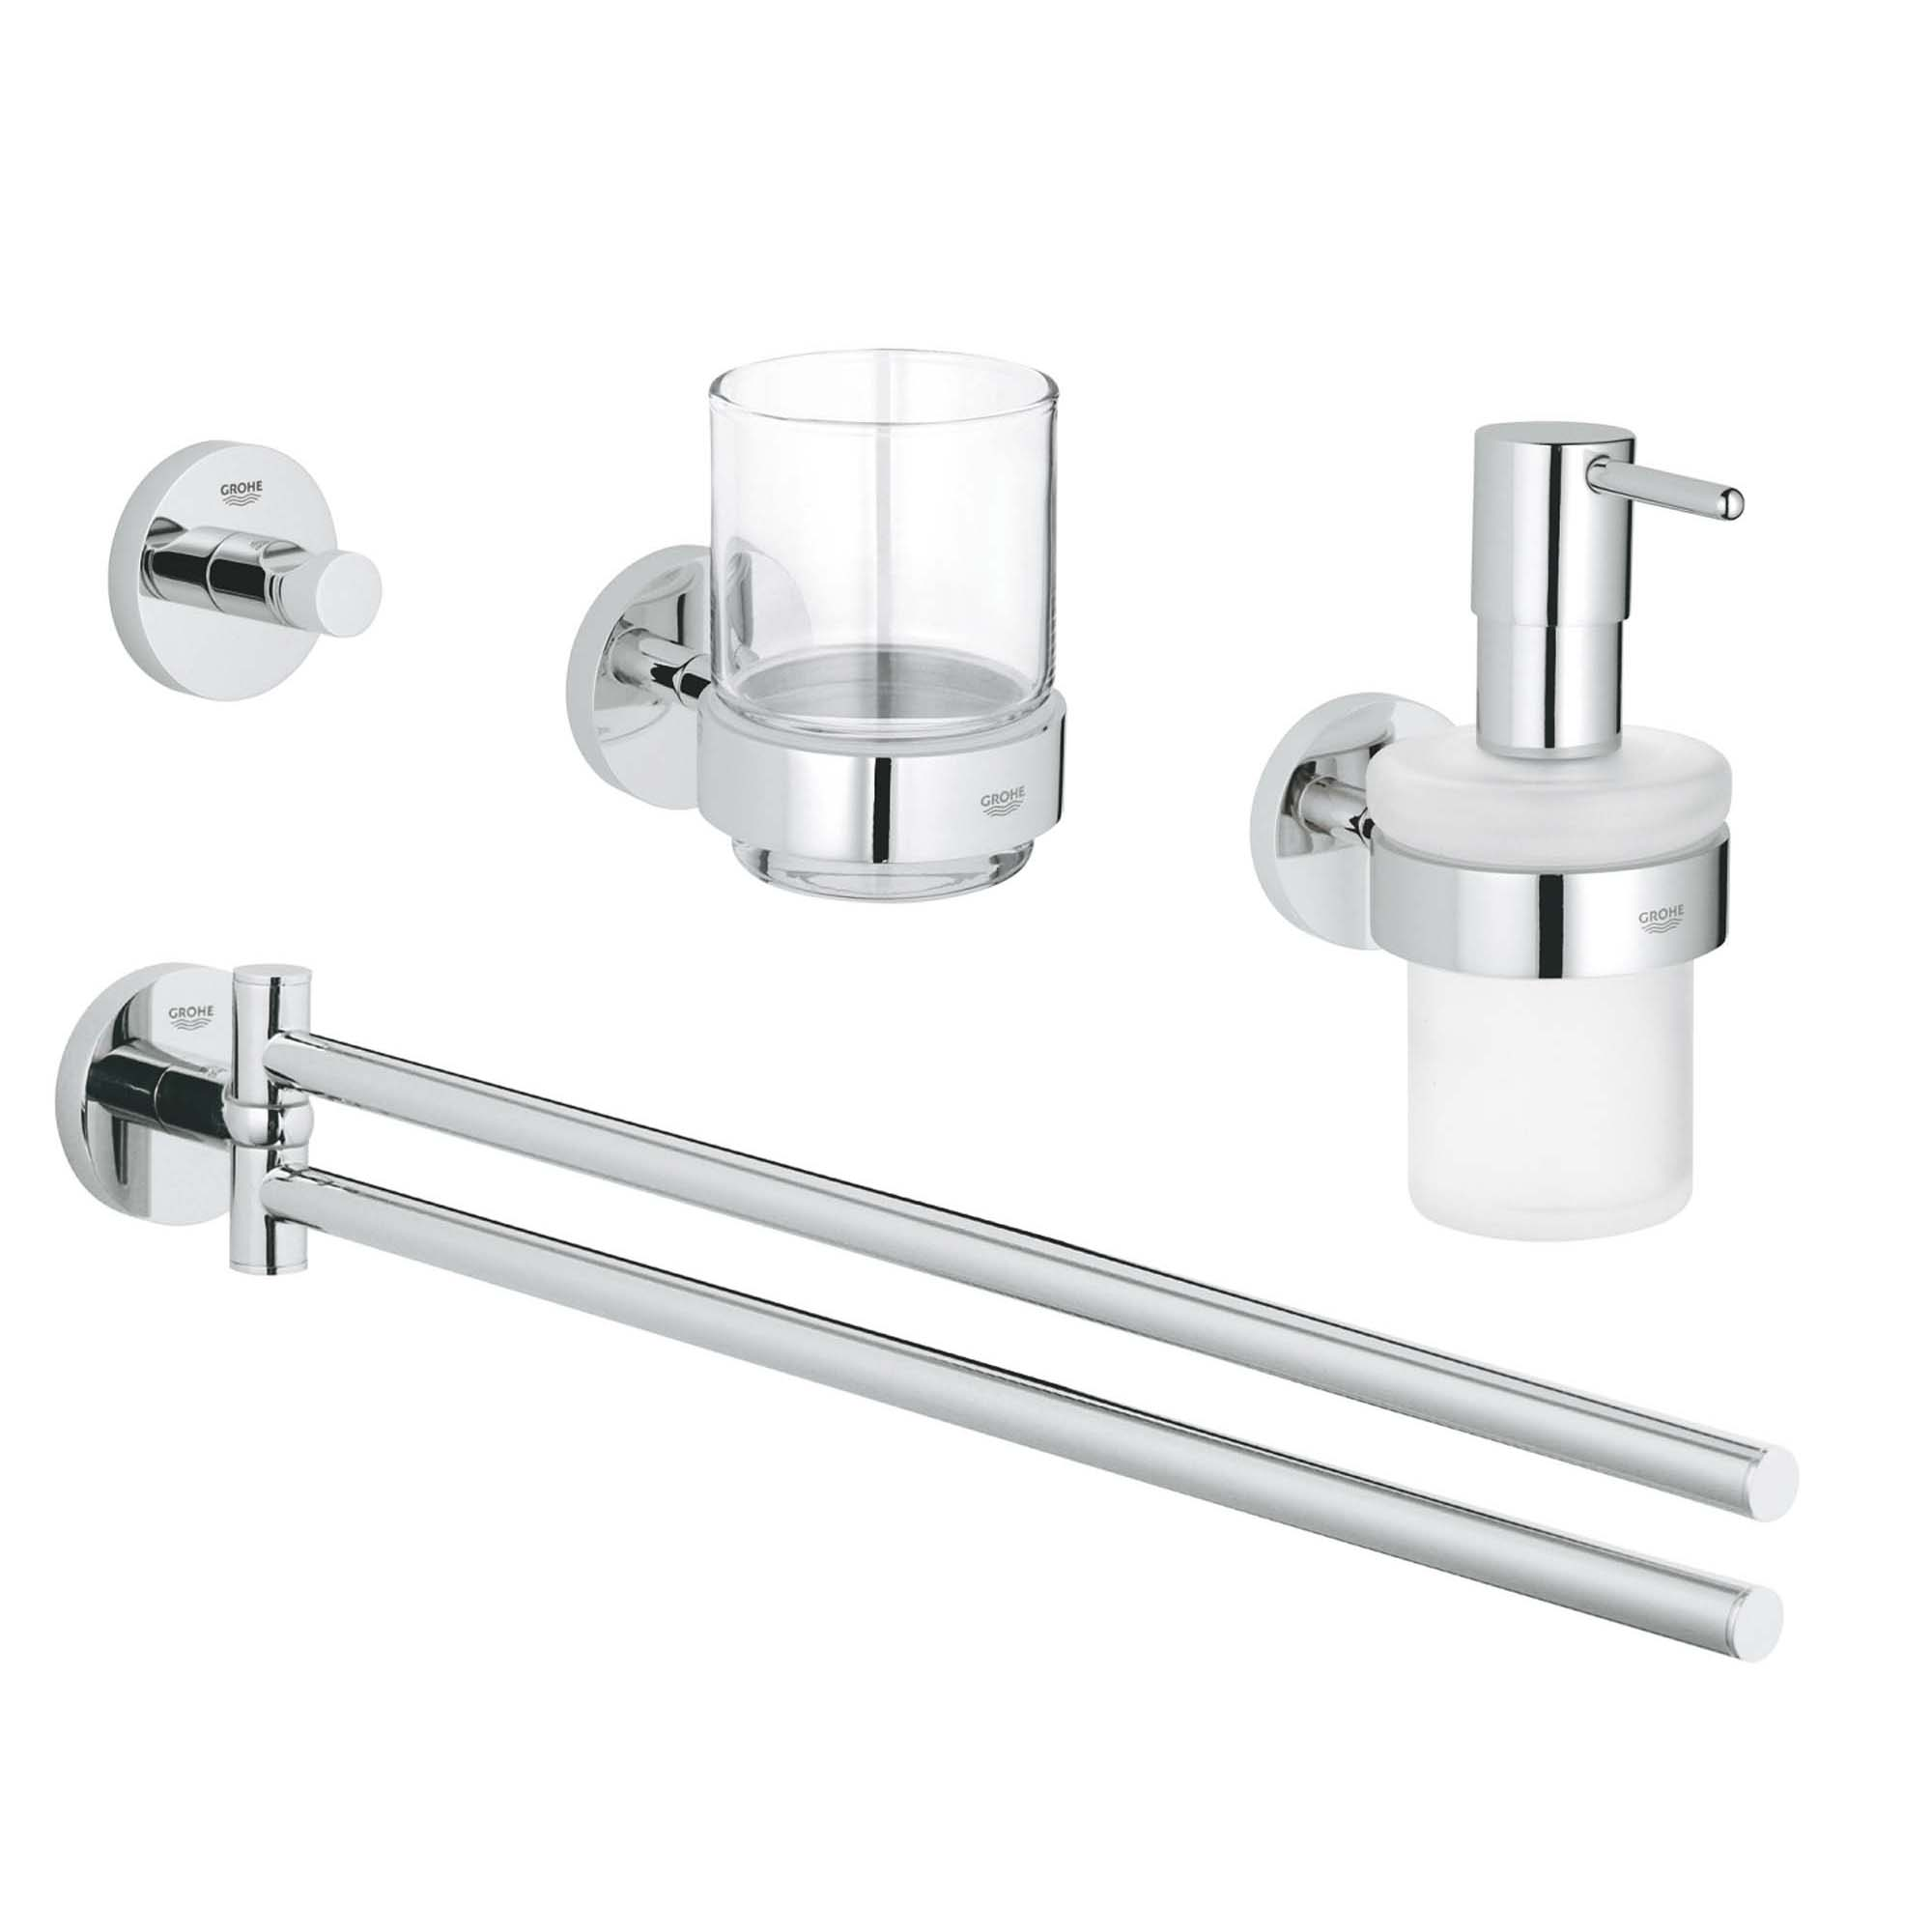 Grohe Badkamer Accessoires Set Bathroom Accessory Sets Grohe Shop Grohe Shop